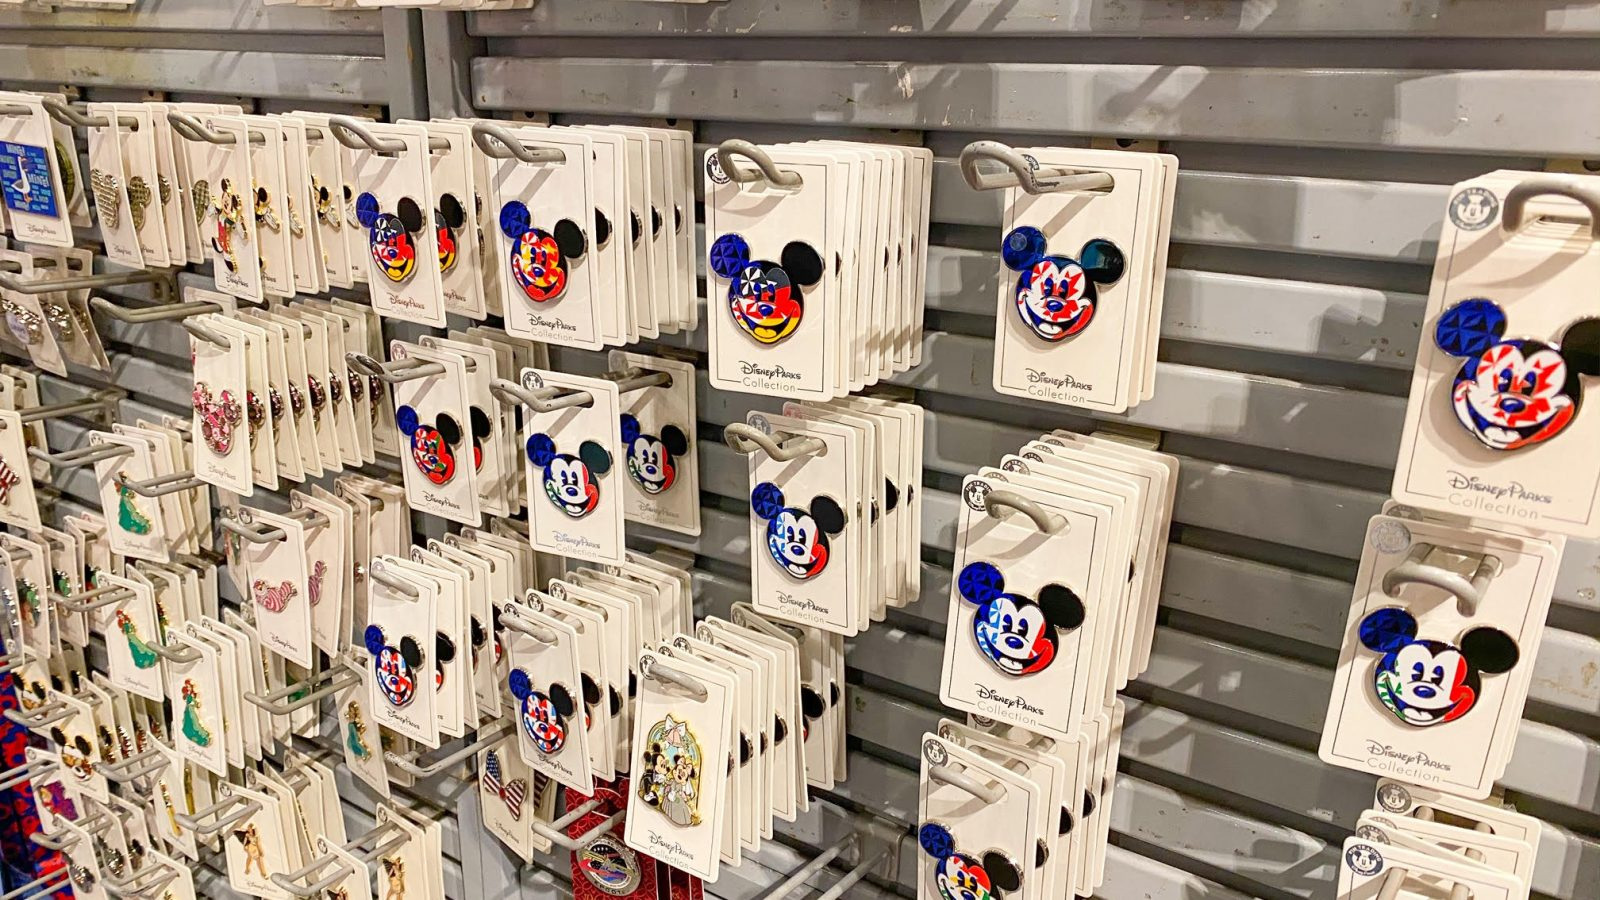 Pins for sale at Disney World